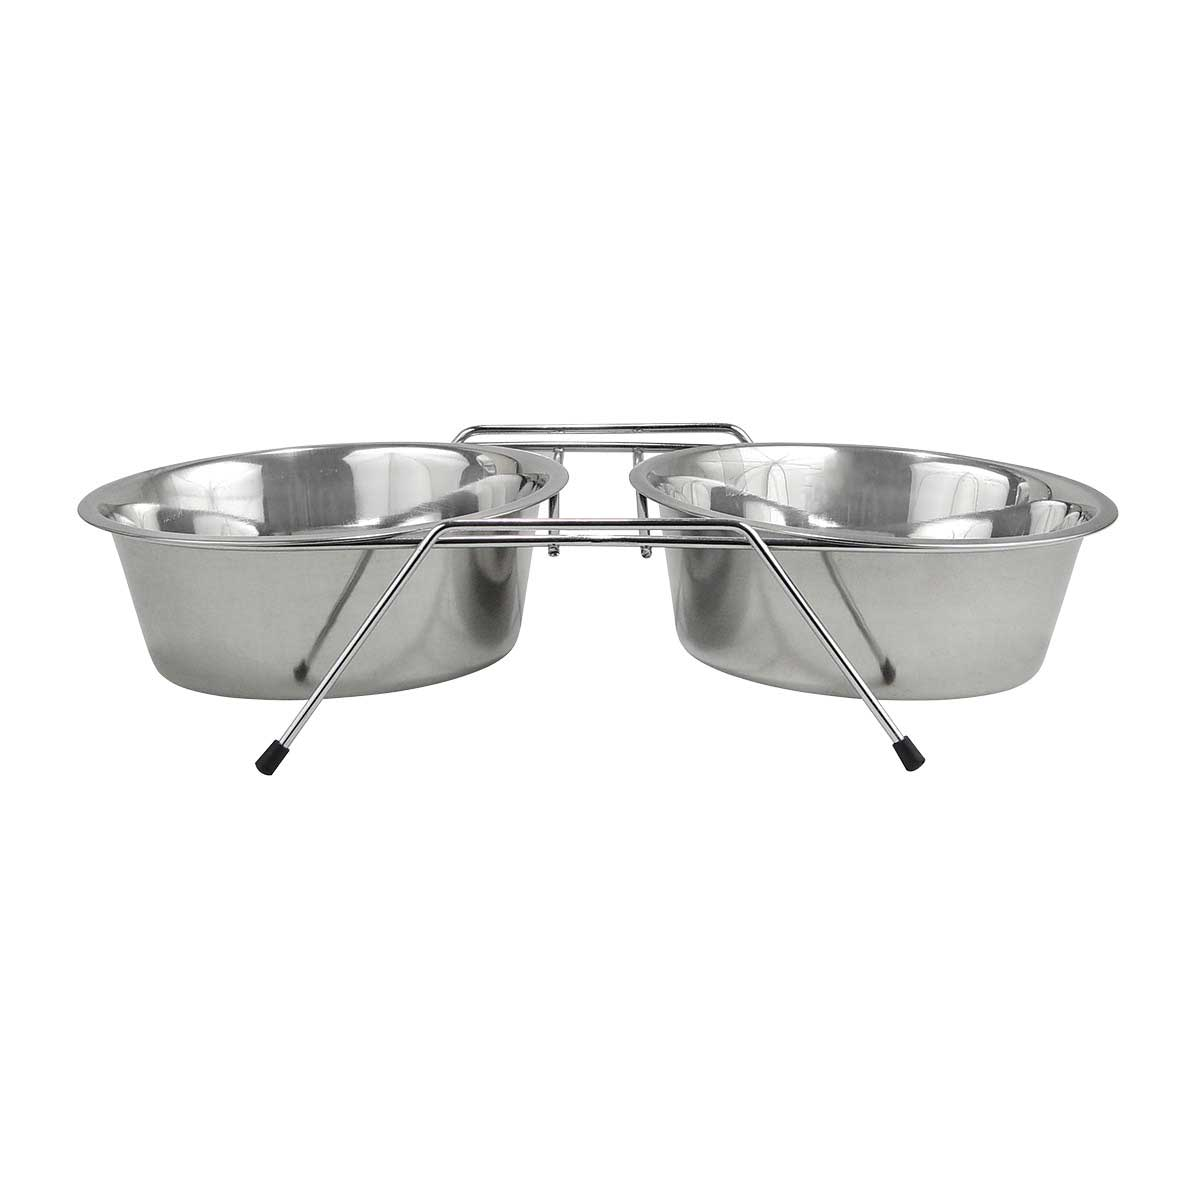 Indipets Stainless Steel Double Diner With 1 Quart Bowls